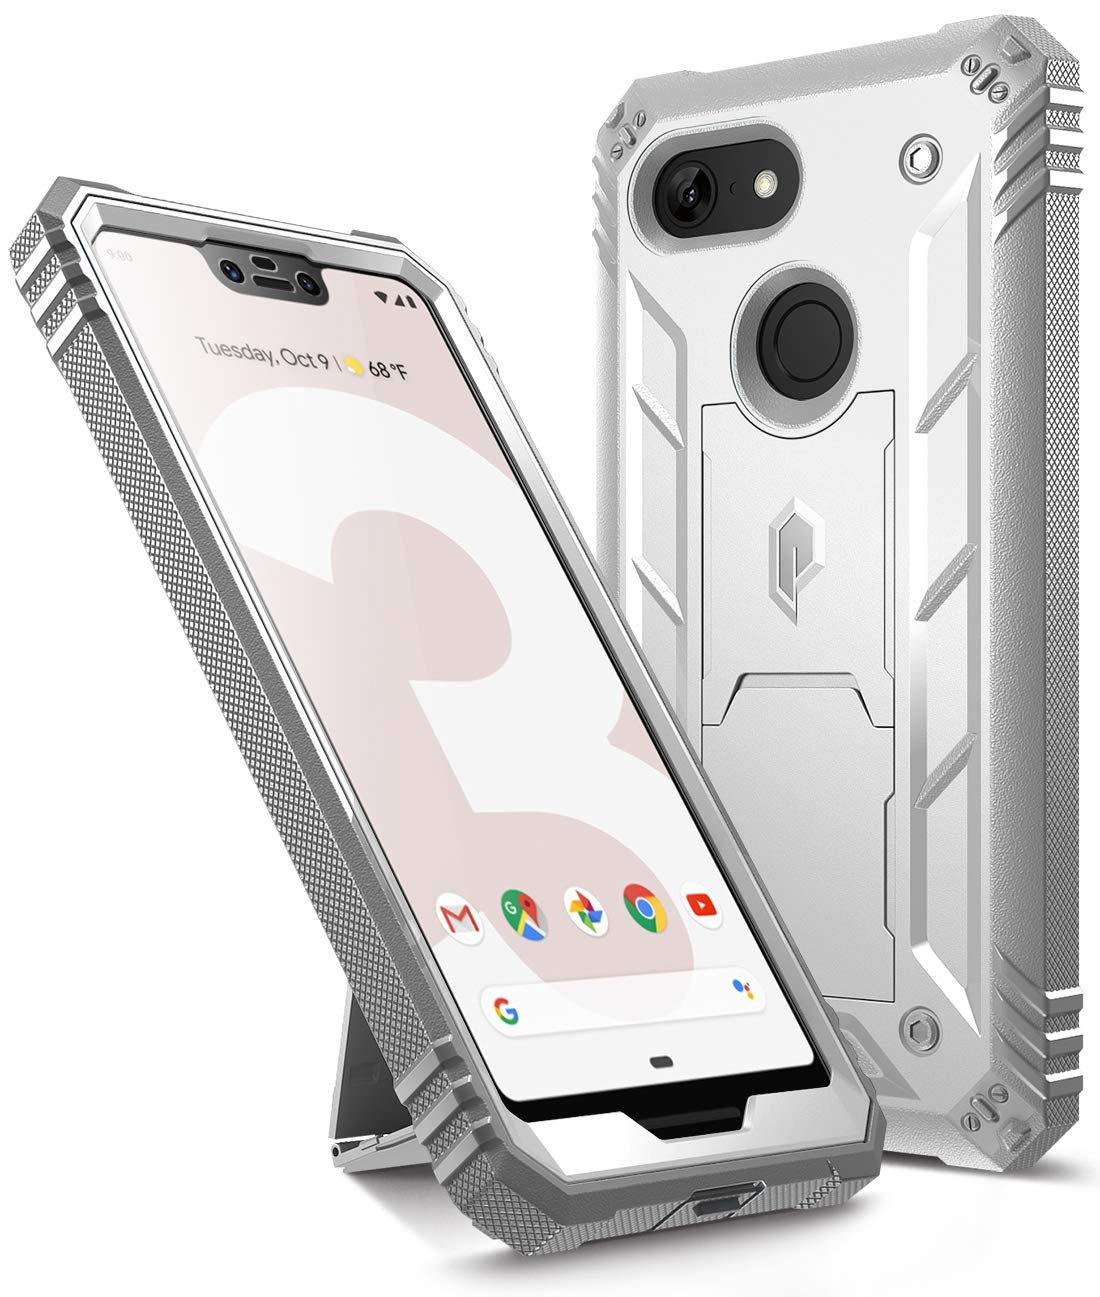 Google Pixel 3 XL Kickstand Rugged Case, Poetic Revolution [360 Degree Protection] Full-Body Rugged Heavy Duty Case with [Built-in-Screen Protector] for Google Pixel 3 XL White